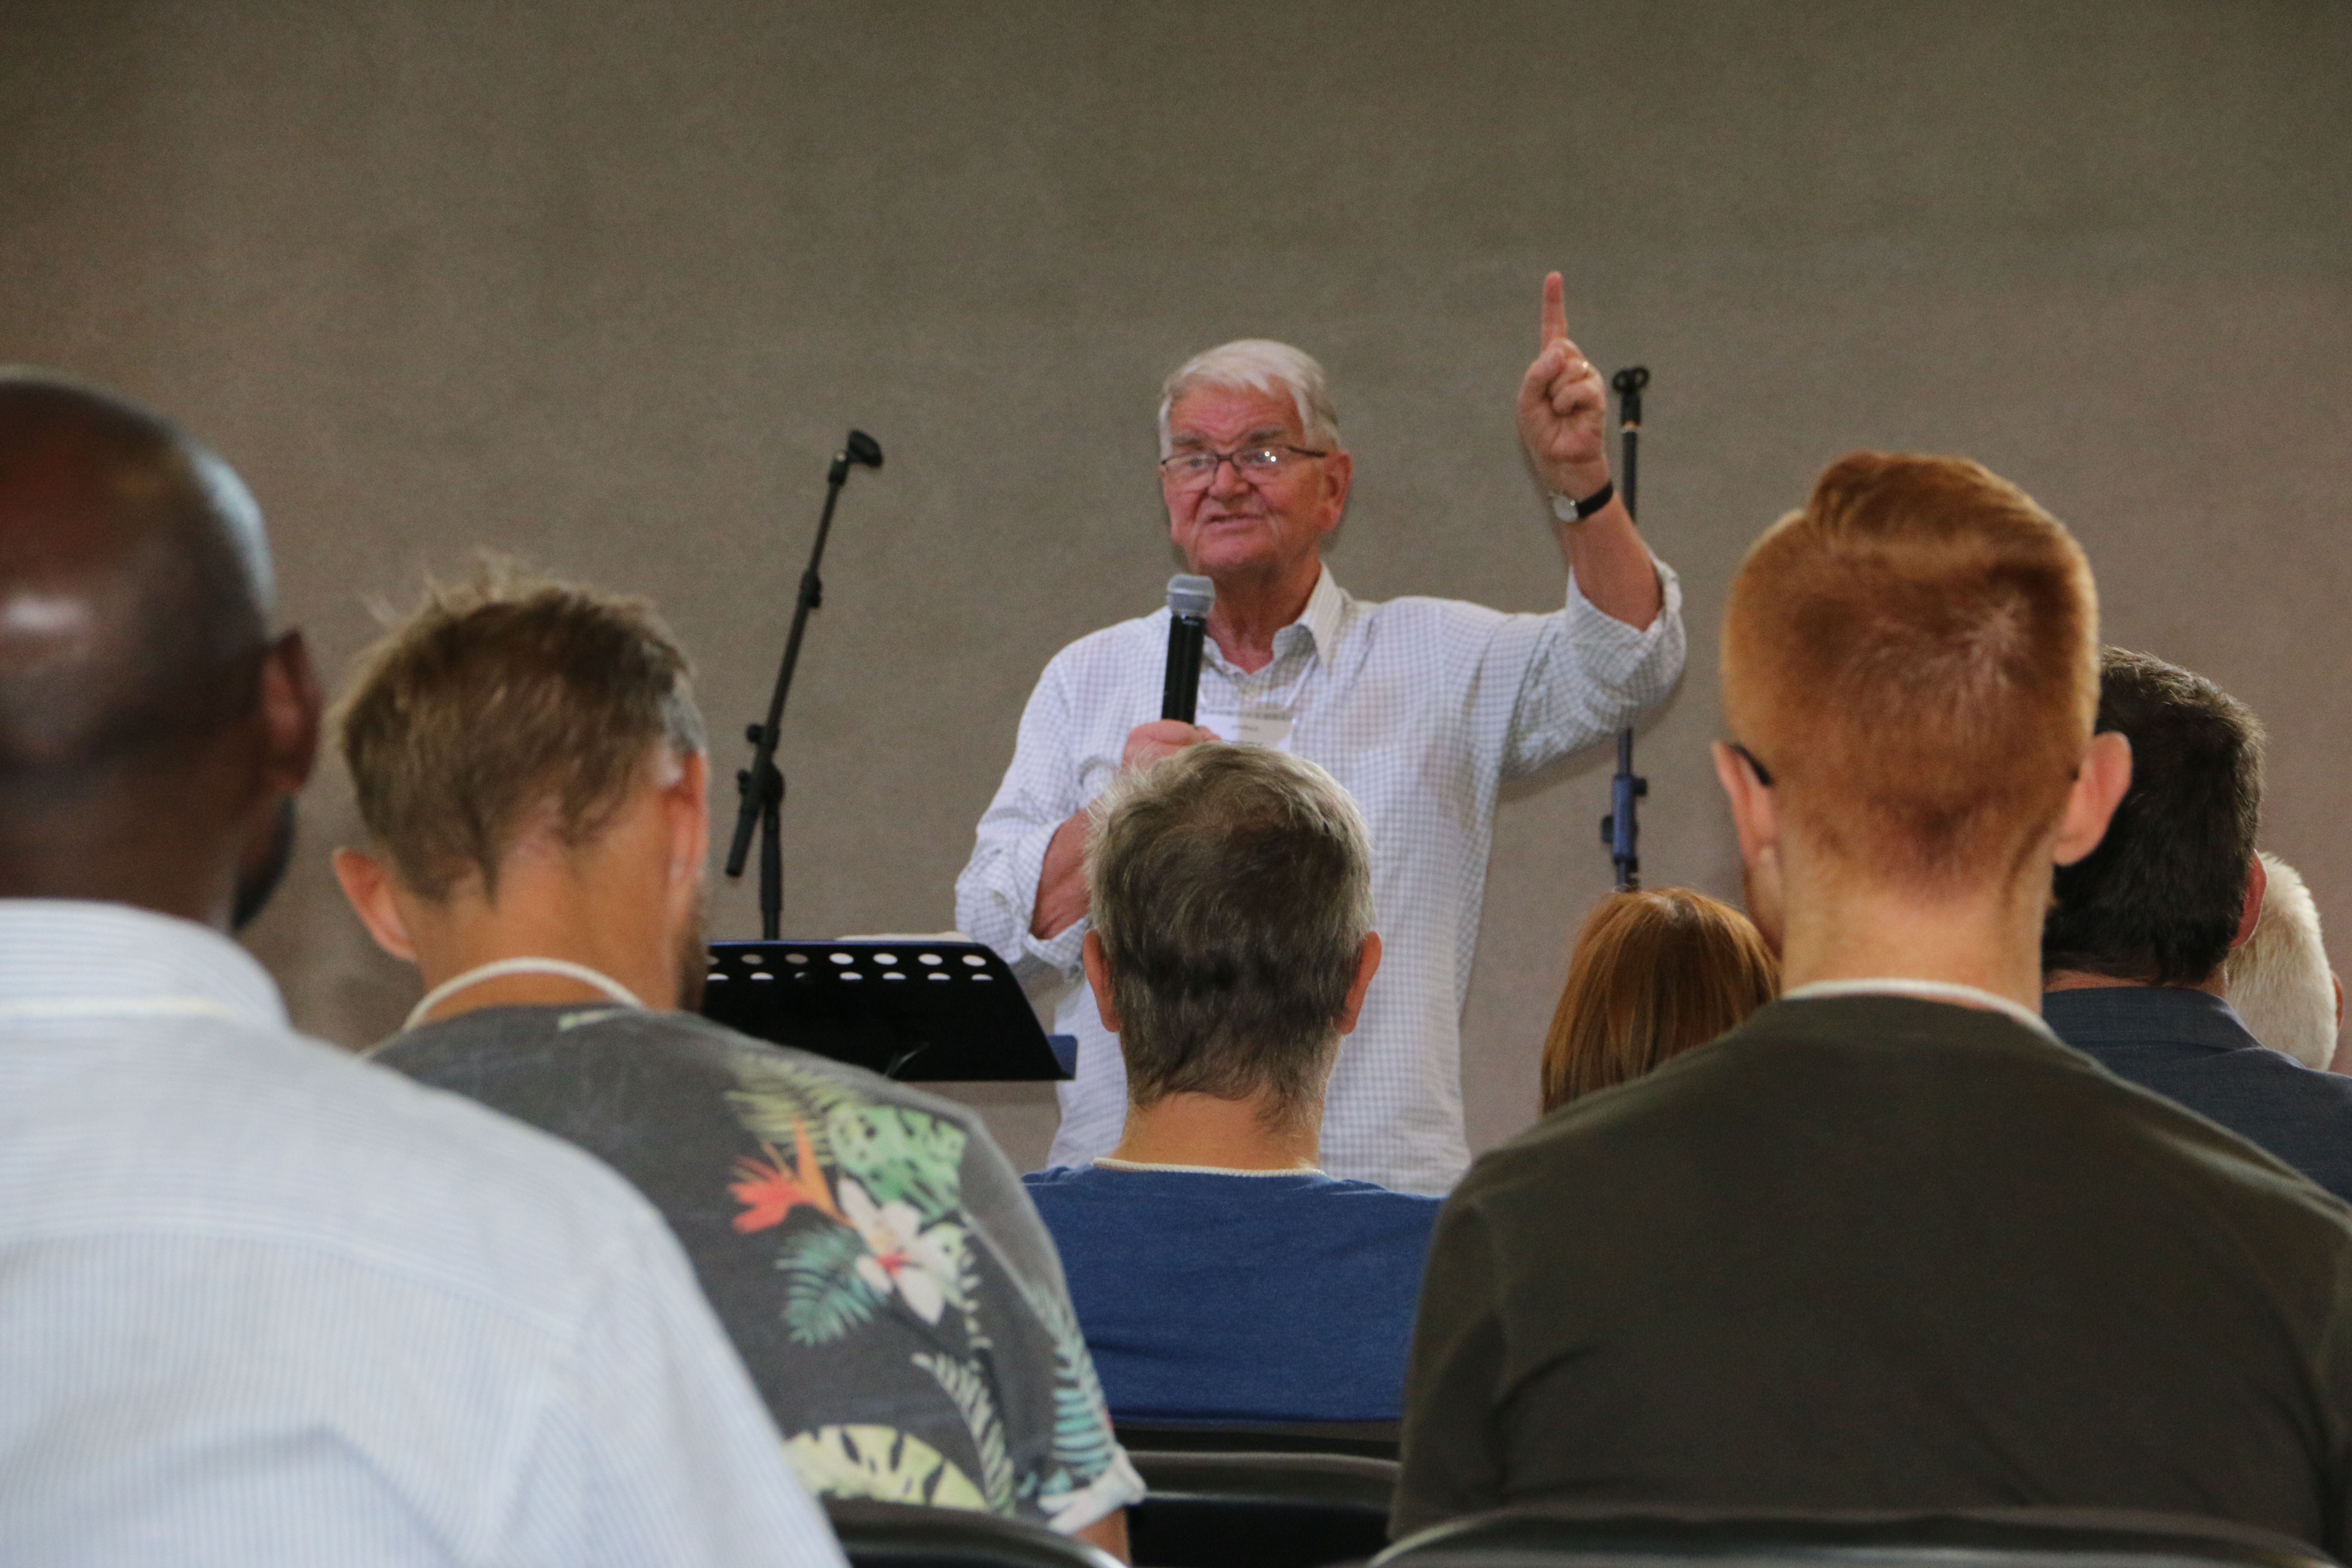 Terry Virgo visits the Western Cape Hub in South Africa